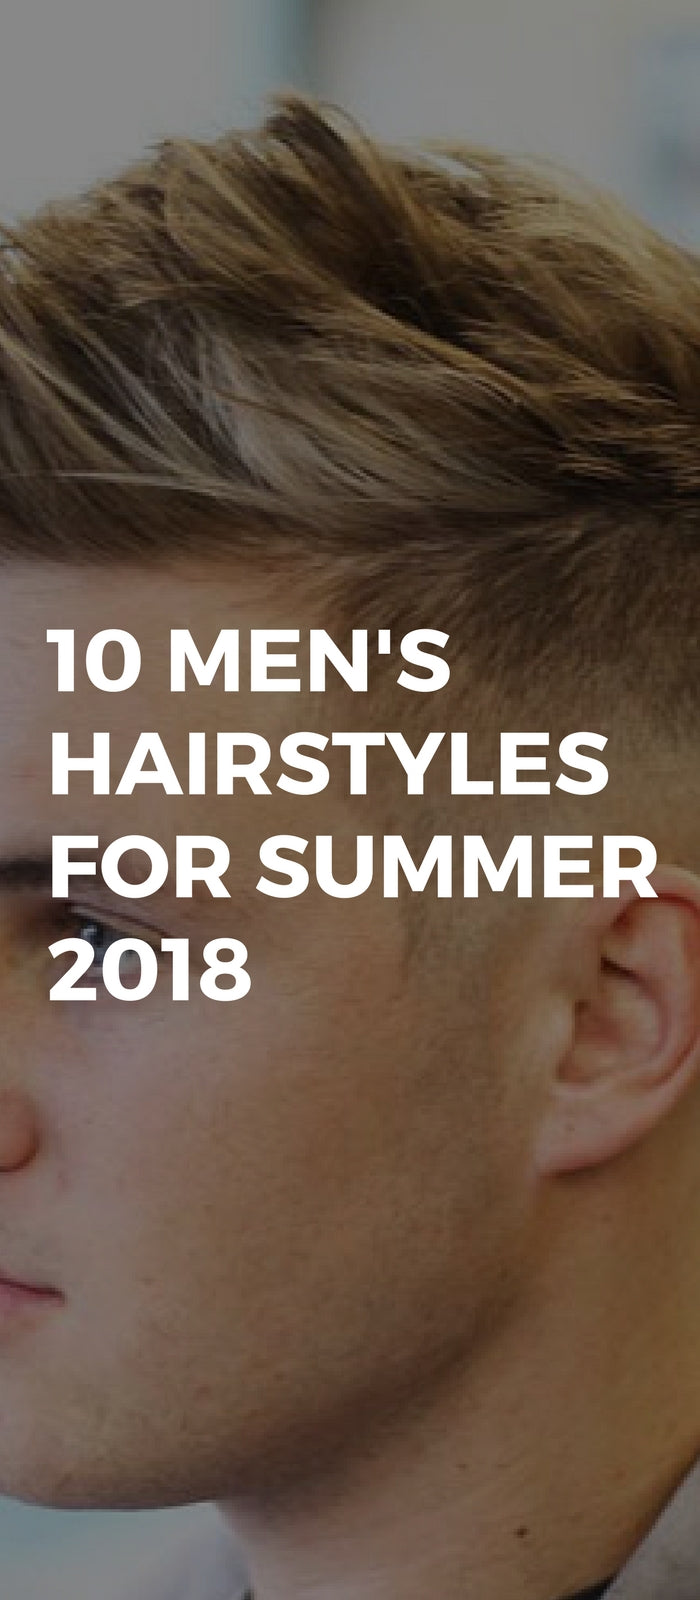 10 Men's Hairstyles For Summer 2018 - LIFESTYLE BY PS